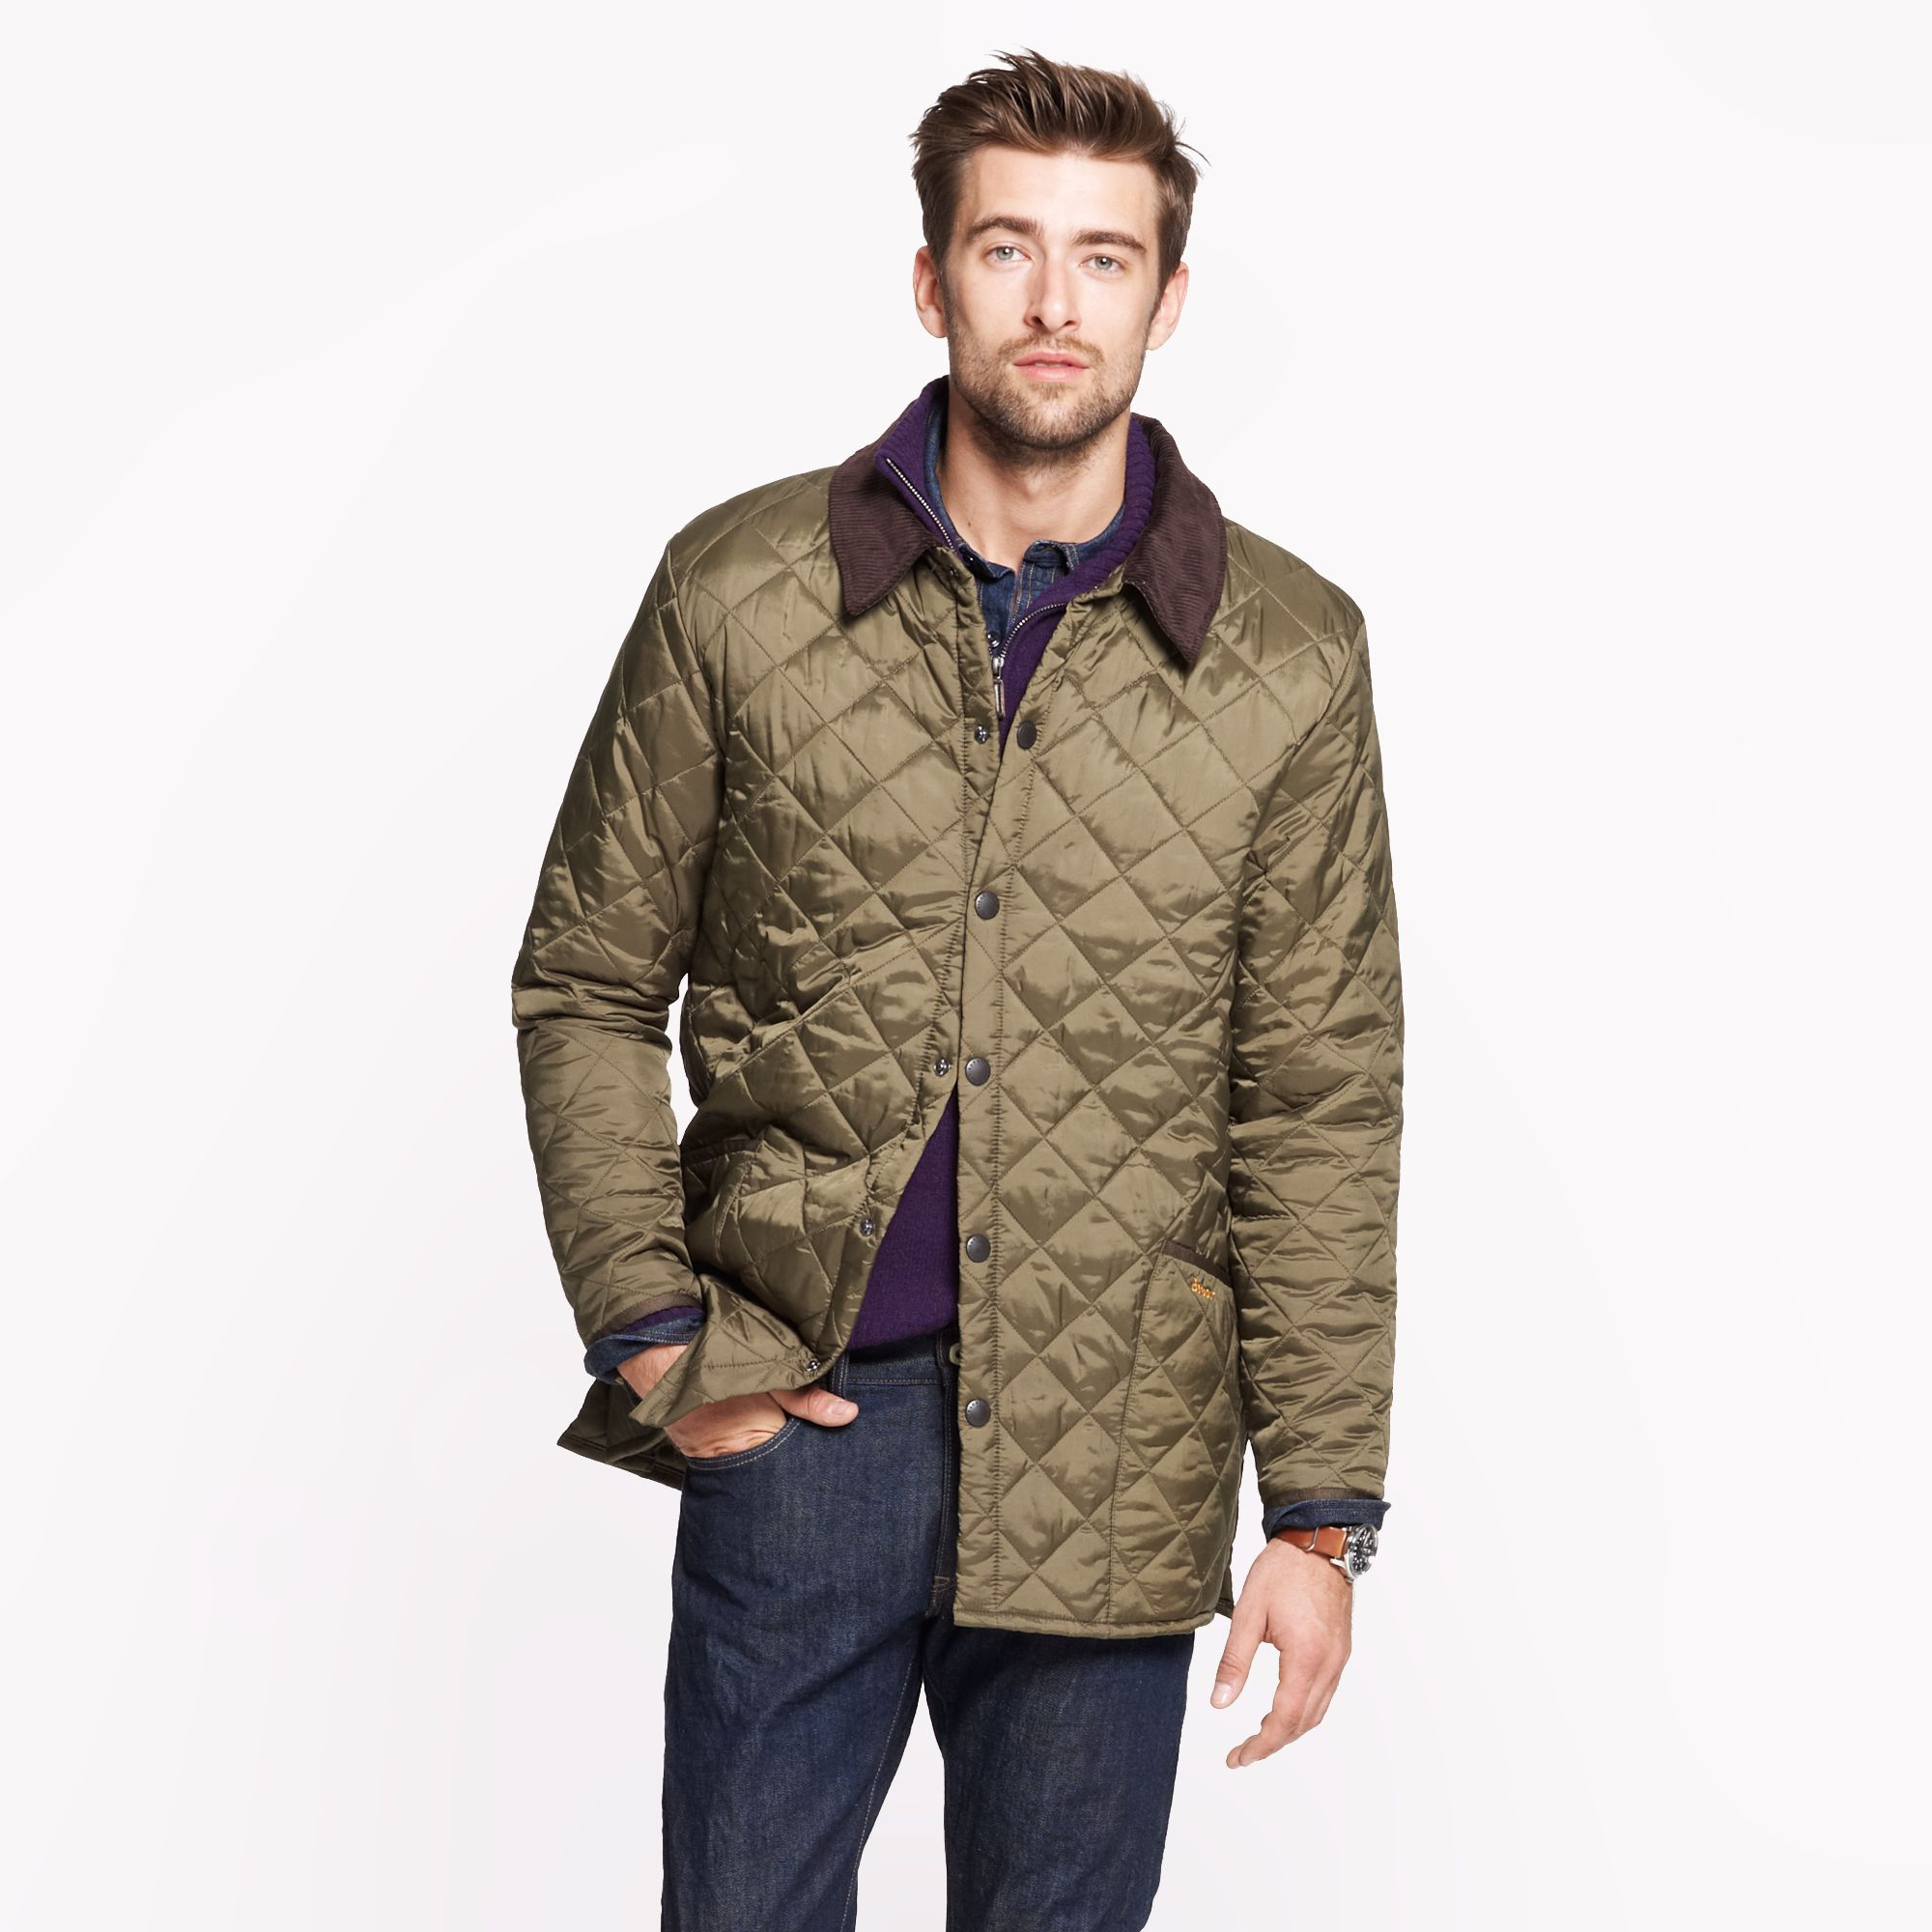 J Crew Barbour Liddesdale Jacket In Green For Men Olive